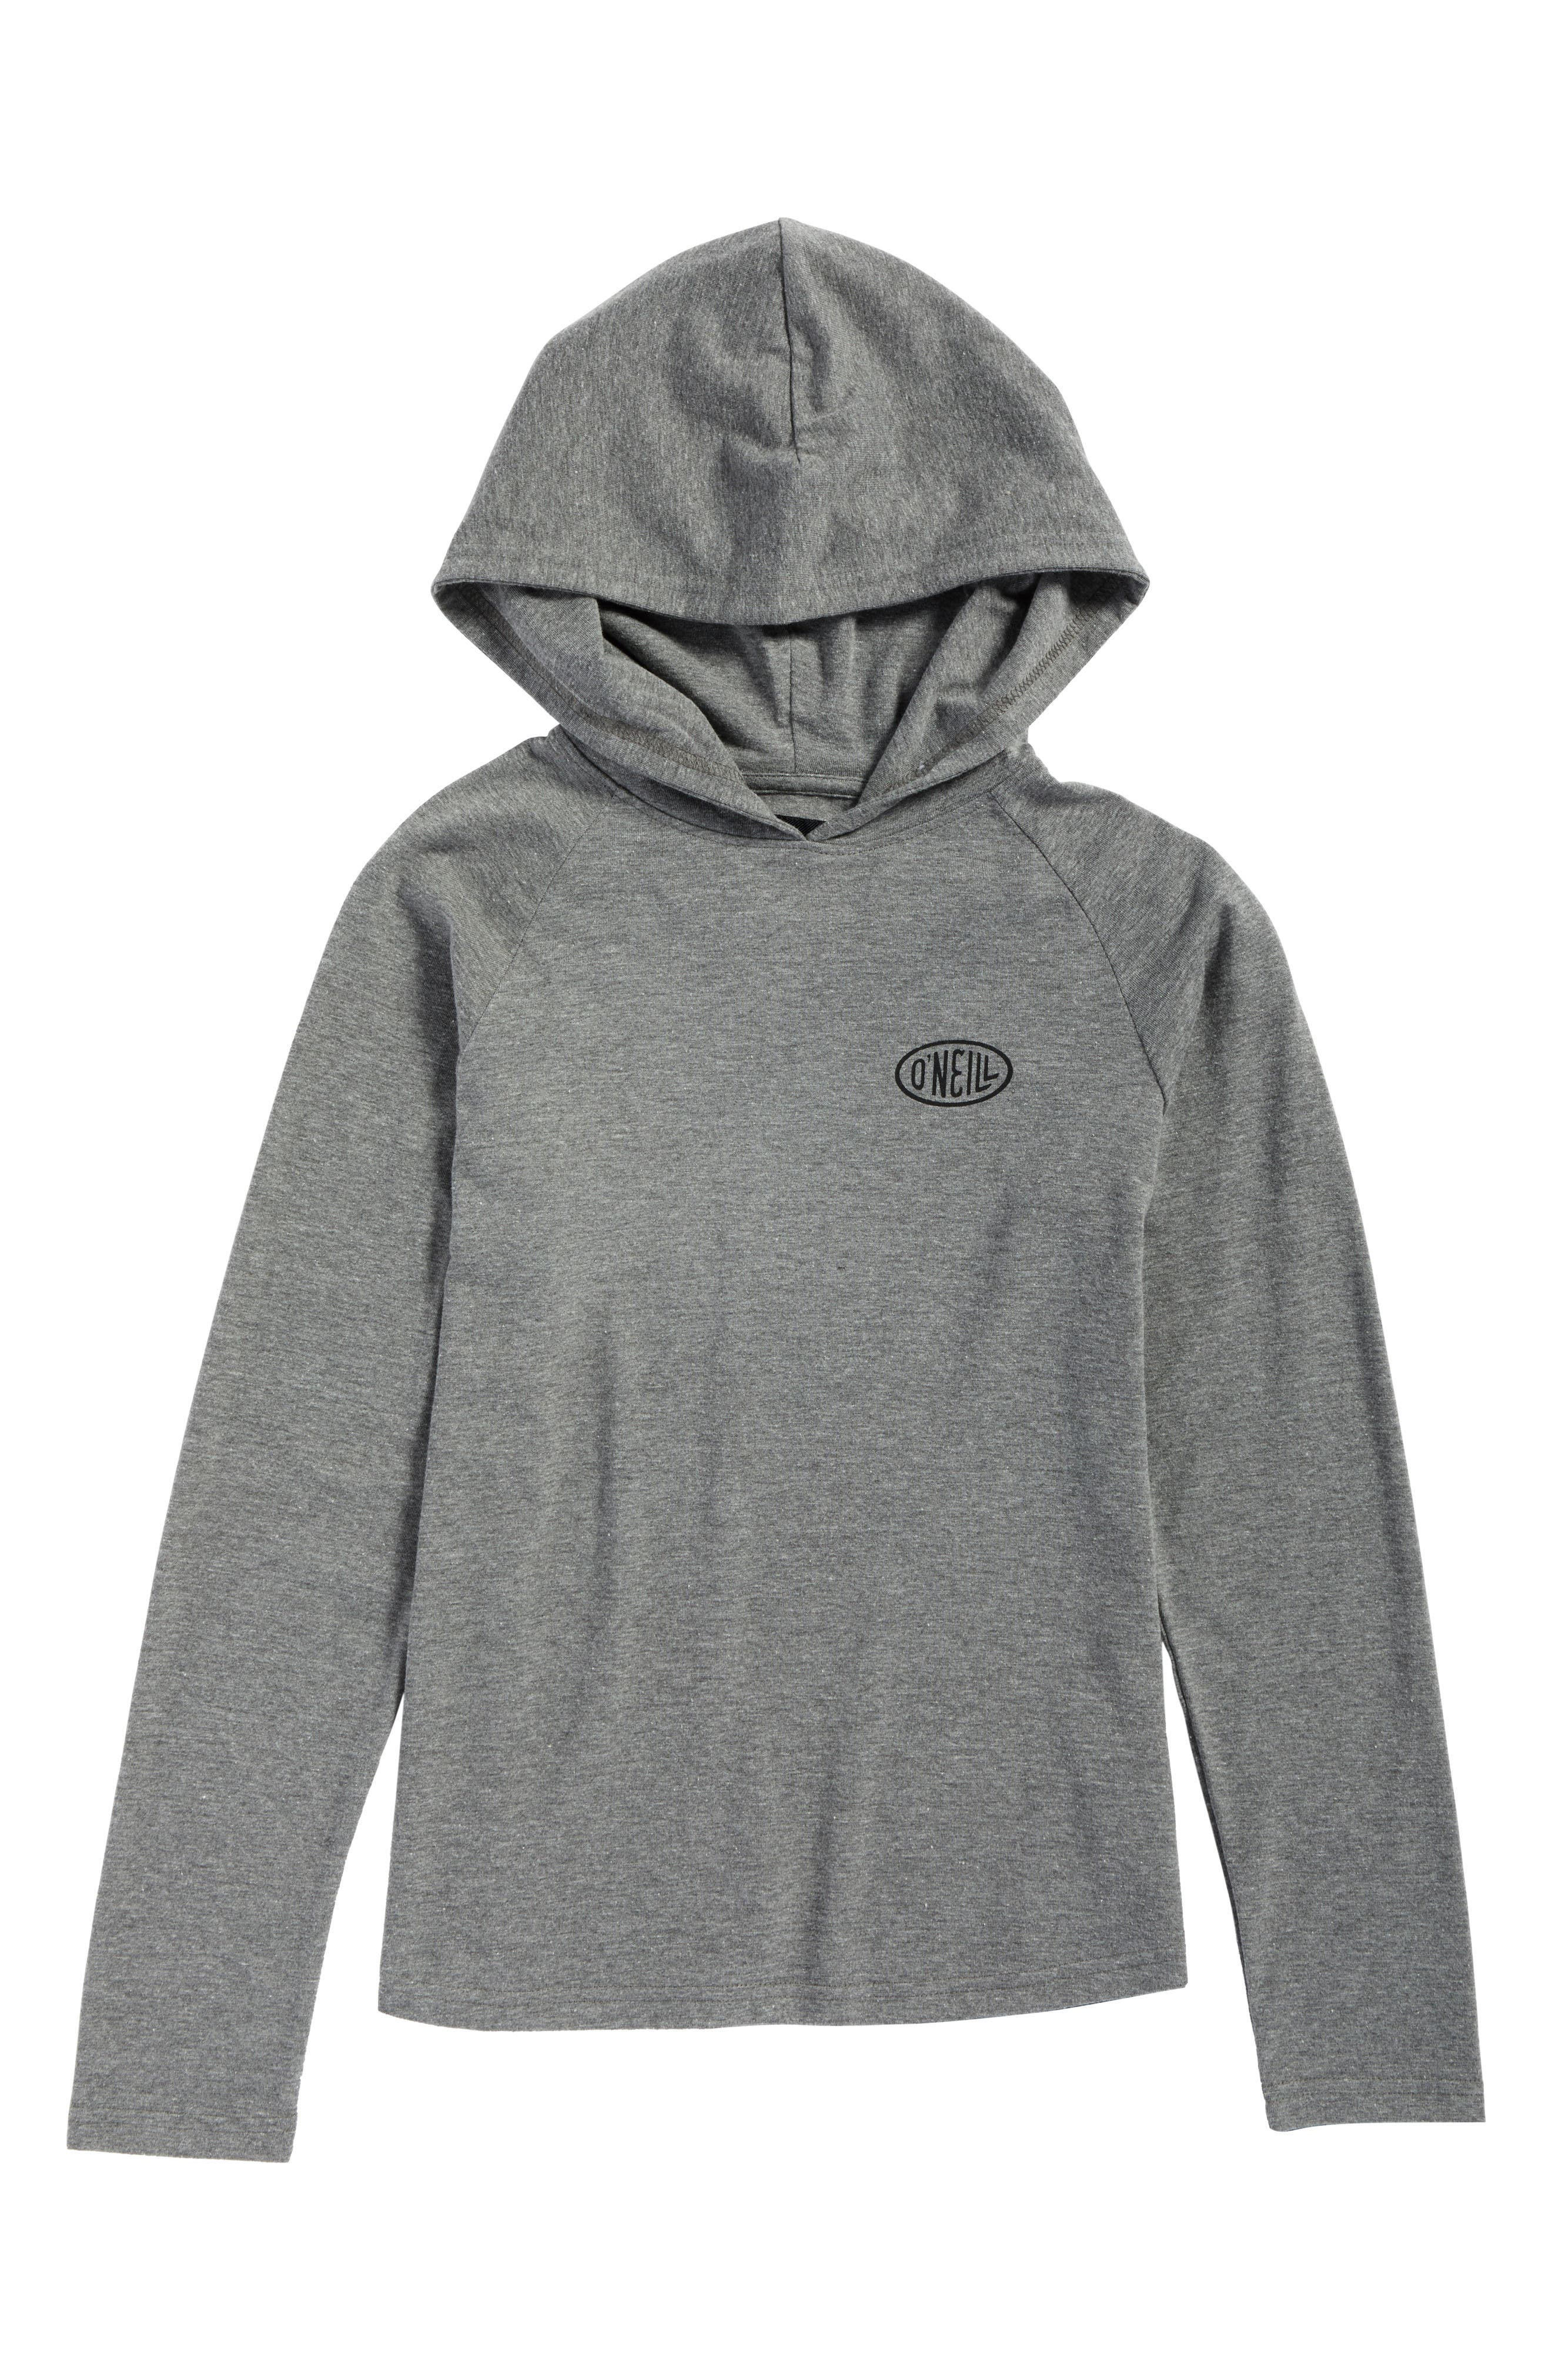 Malcom Logo Graphic Pullover Hoodie,                             Main thumbnail 1, color,                             Heather Grey